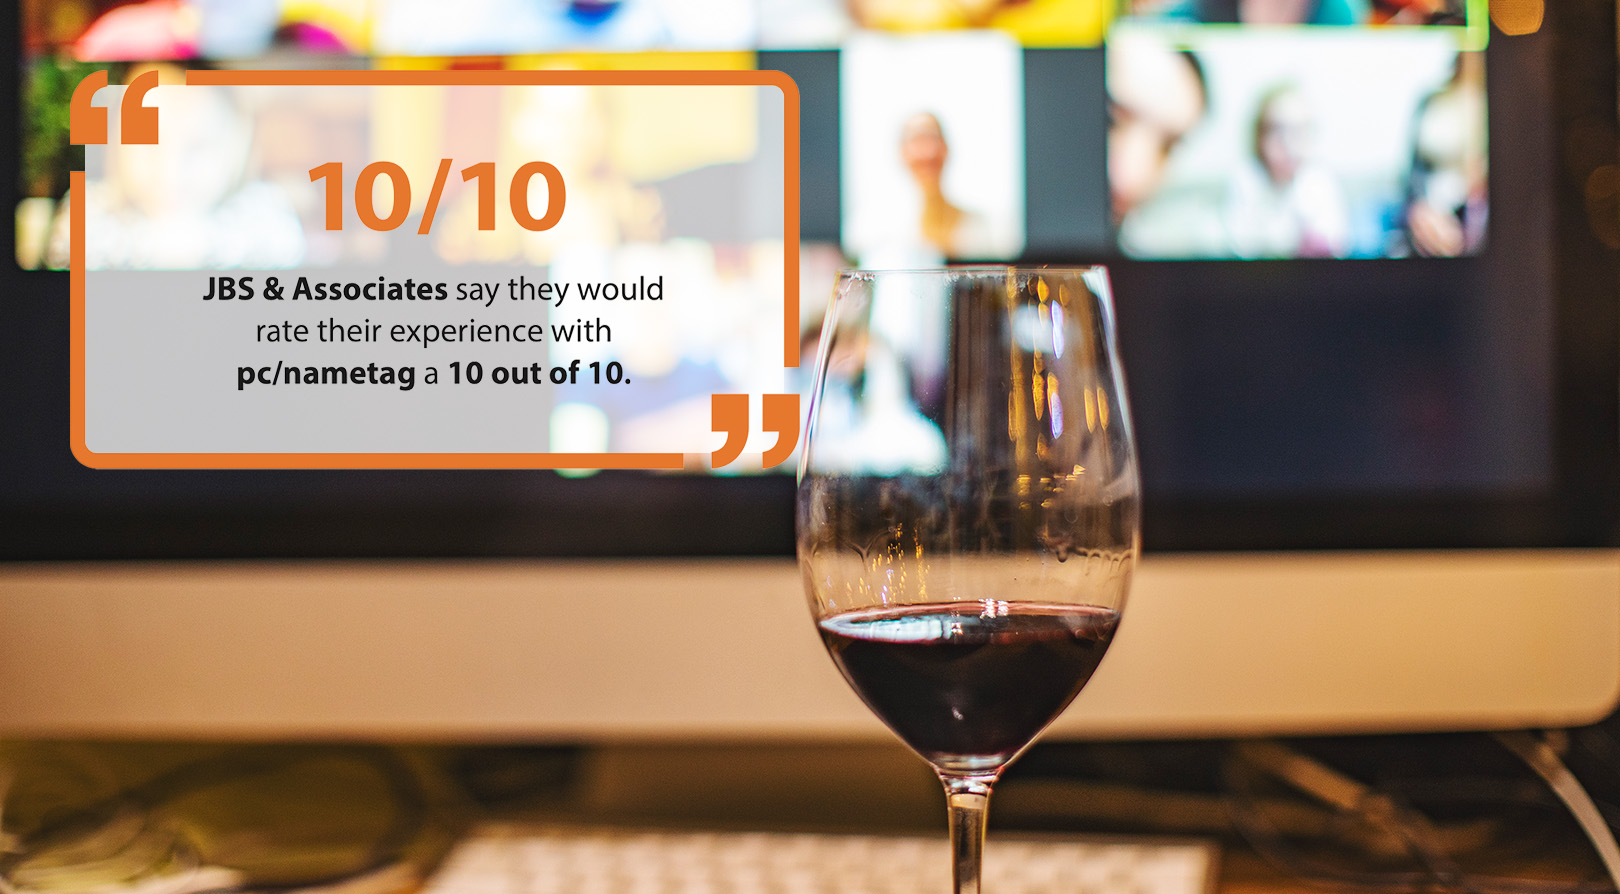 JBS & Associates would rate their experience with pc/nametag a 10 out of 10